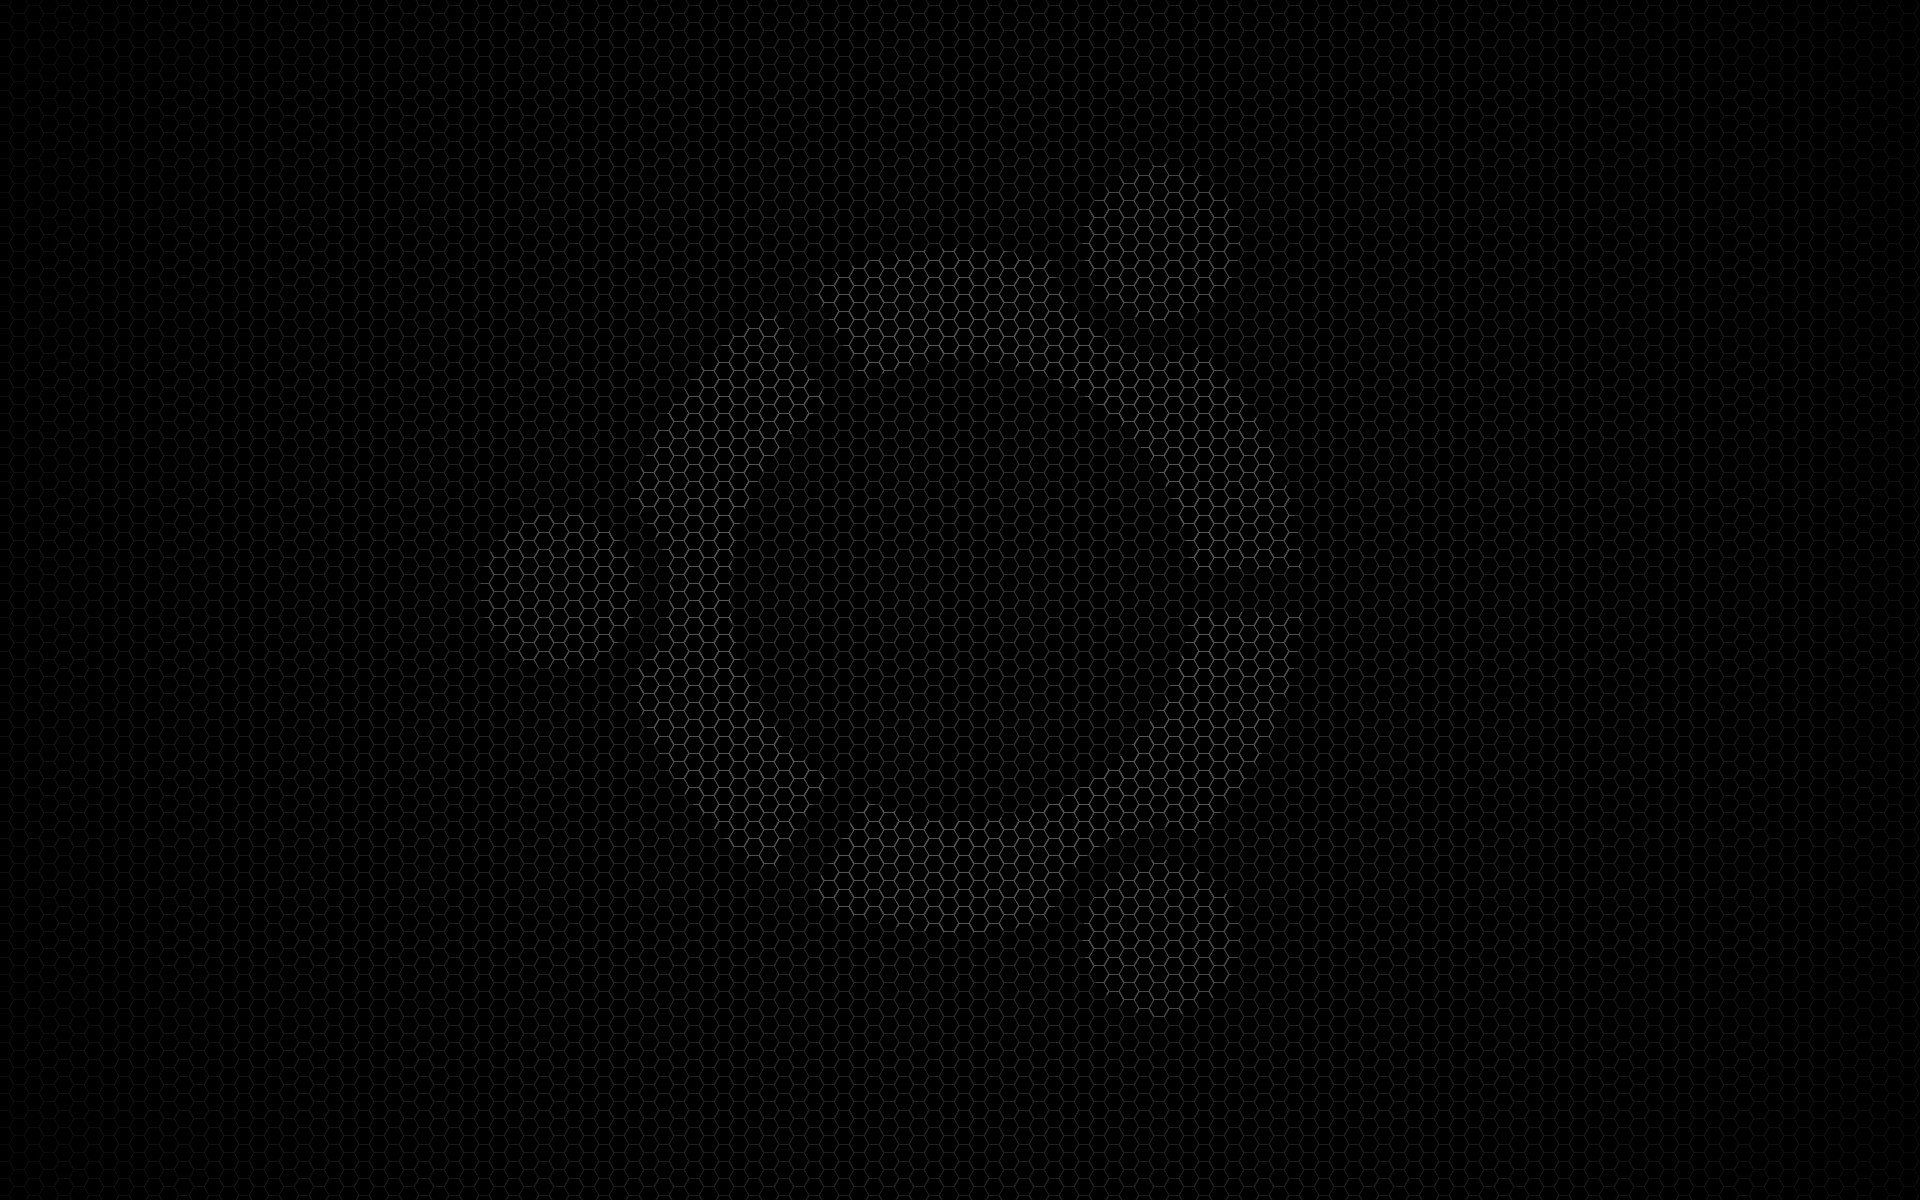 Black Theme Wallpapers Top Free Black Theme Backgrounds Wallpaperaccess